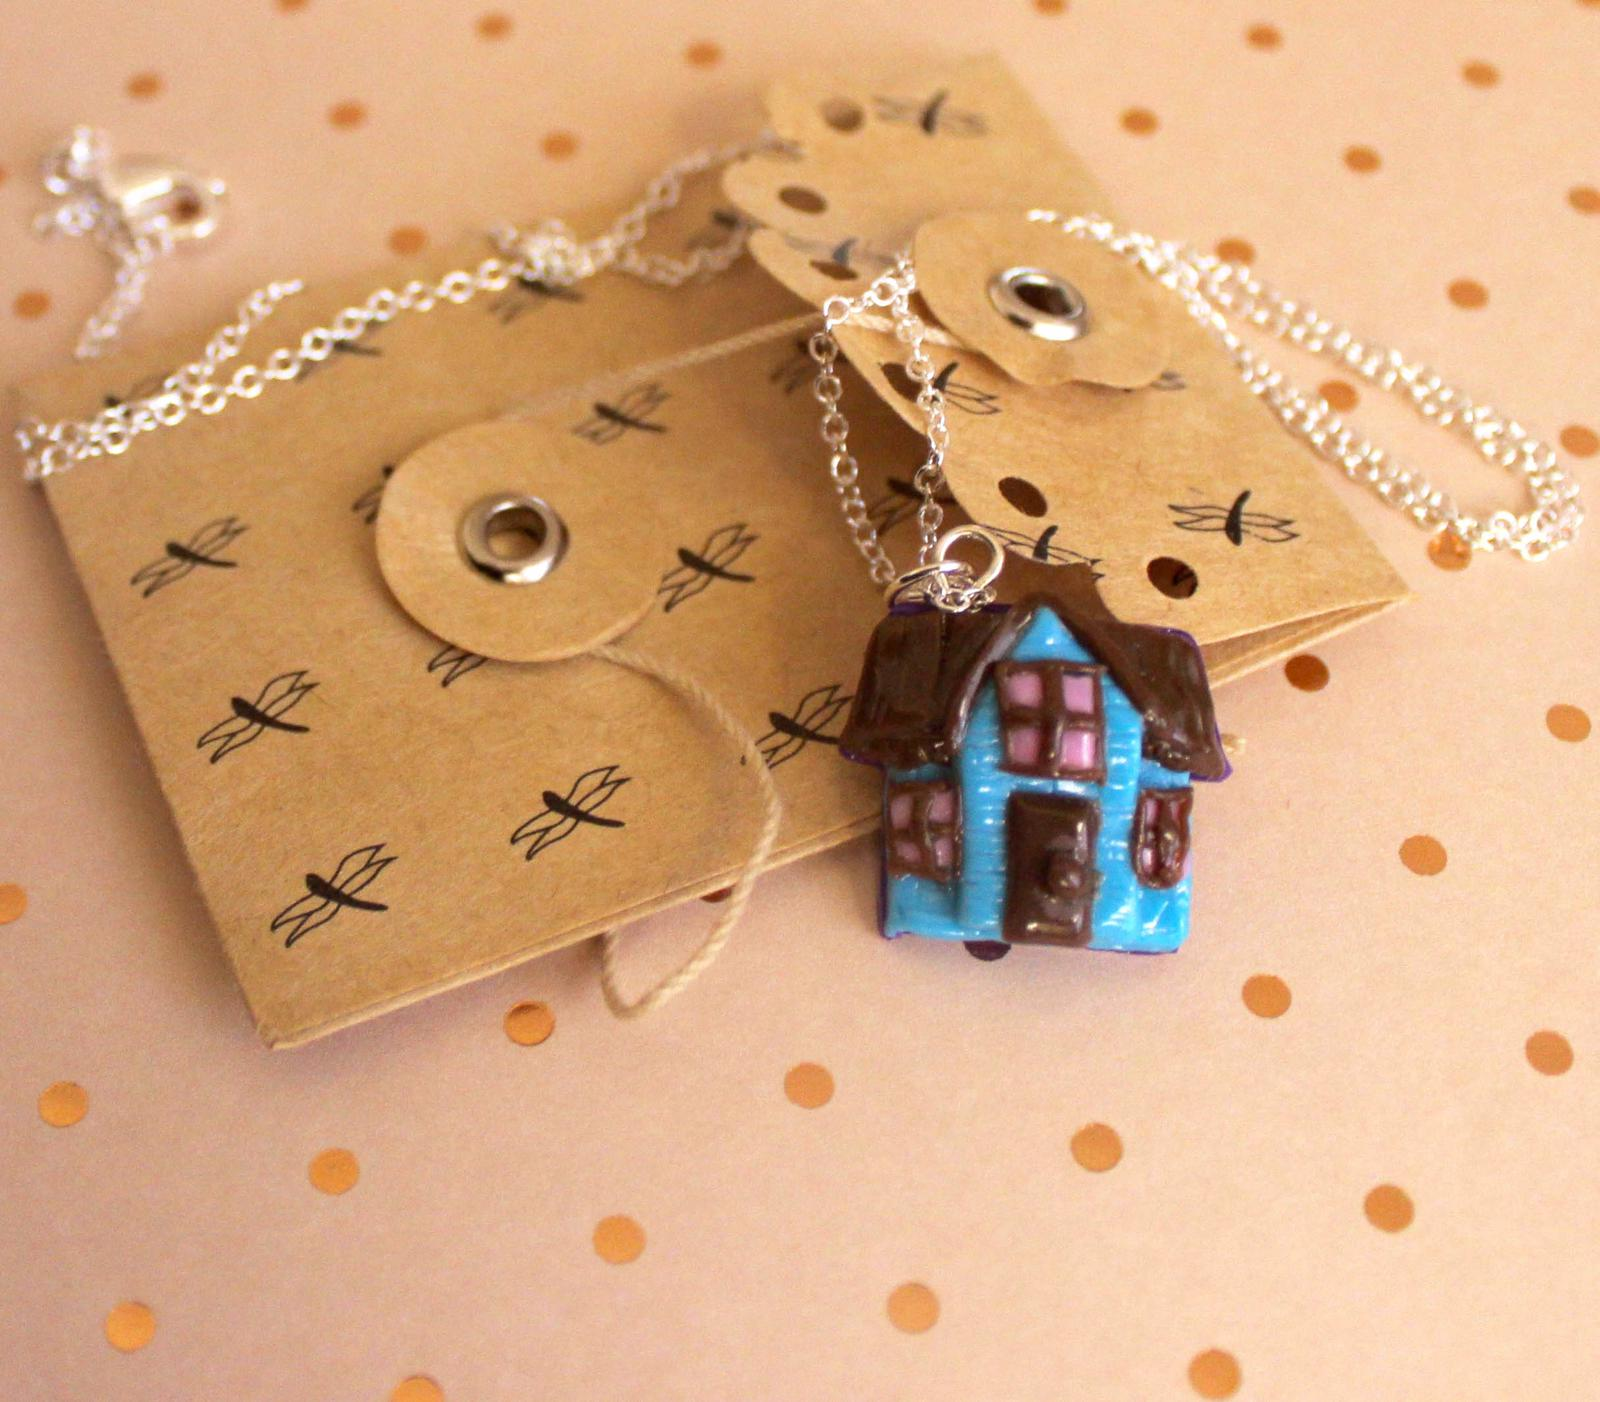 Blue House Necklace